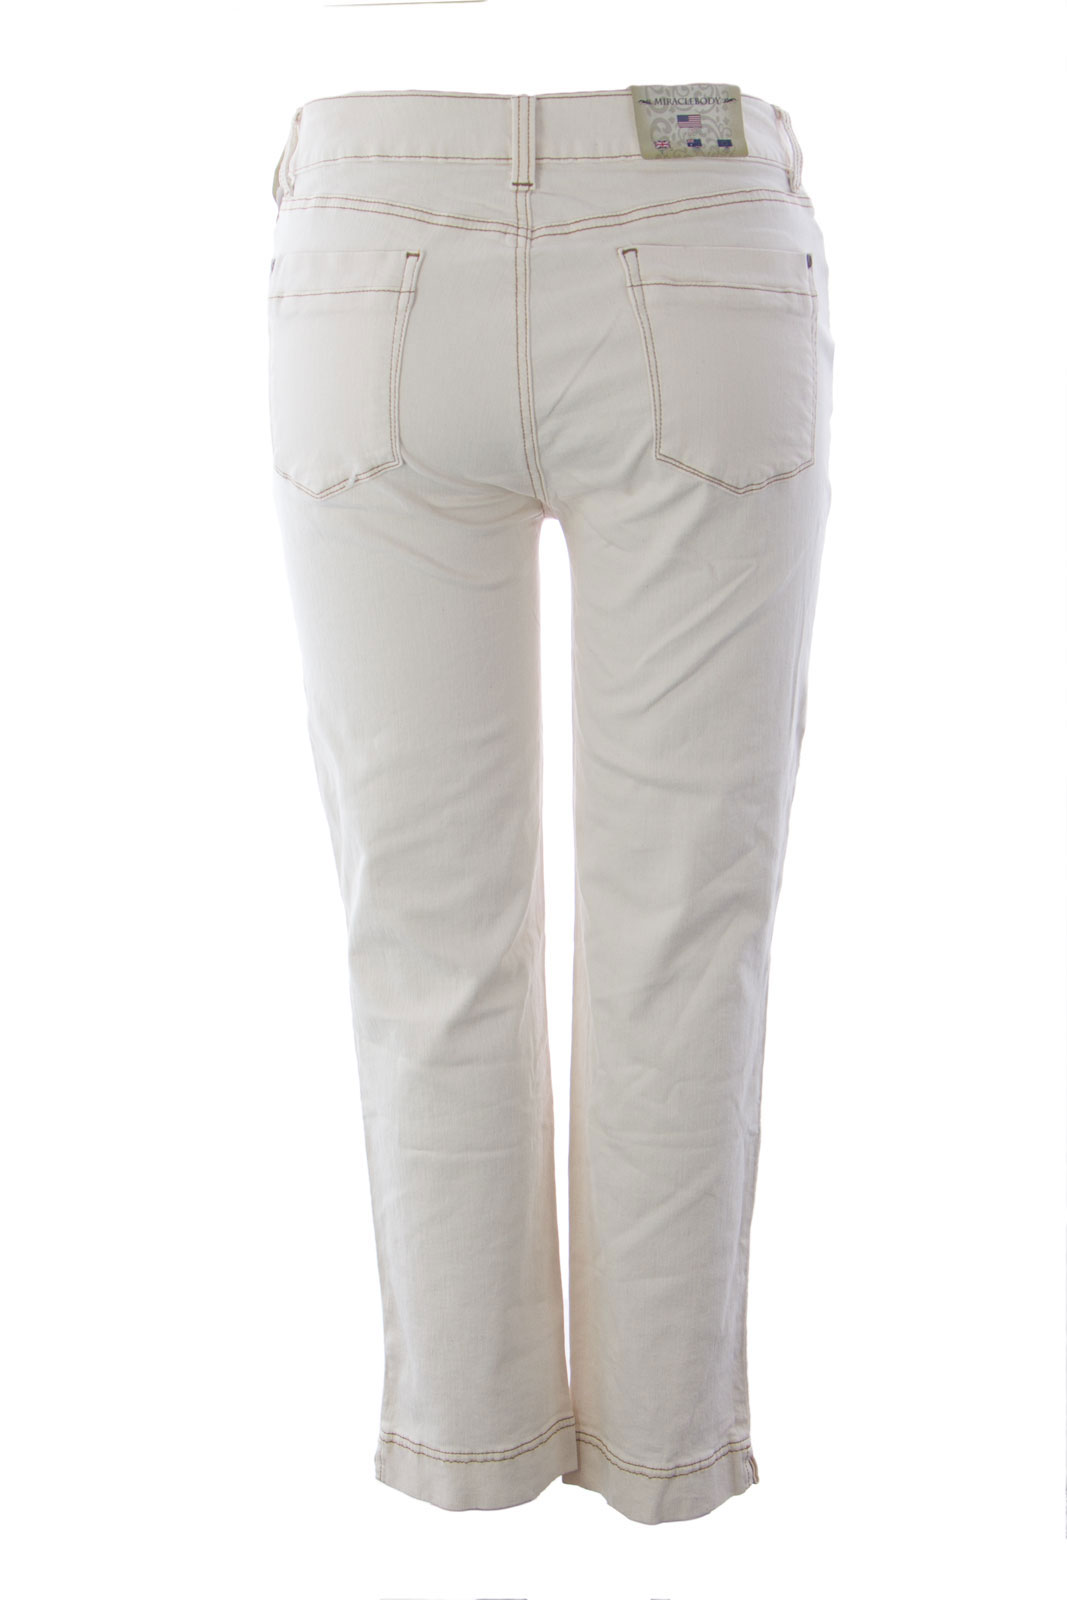 MIRACLEBODY by Miraclesuit Women/'s Natural Lila Ankle Jeans Sz 16 $106 NWT